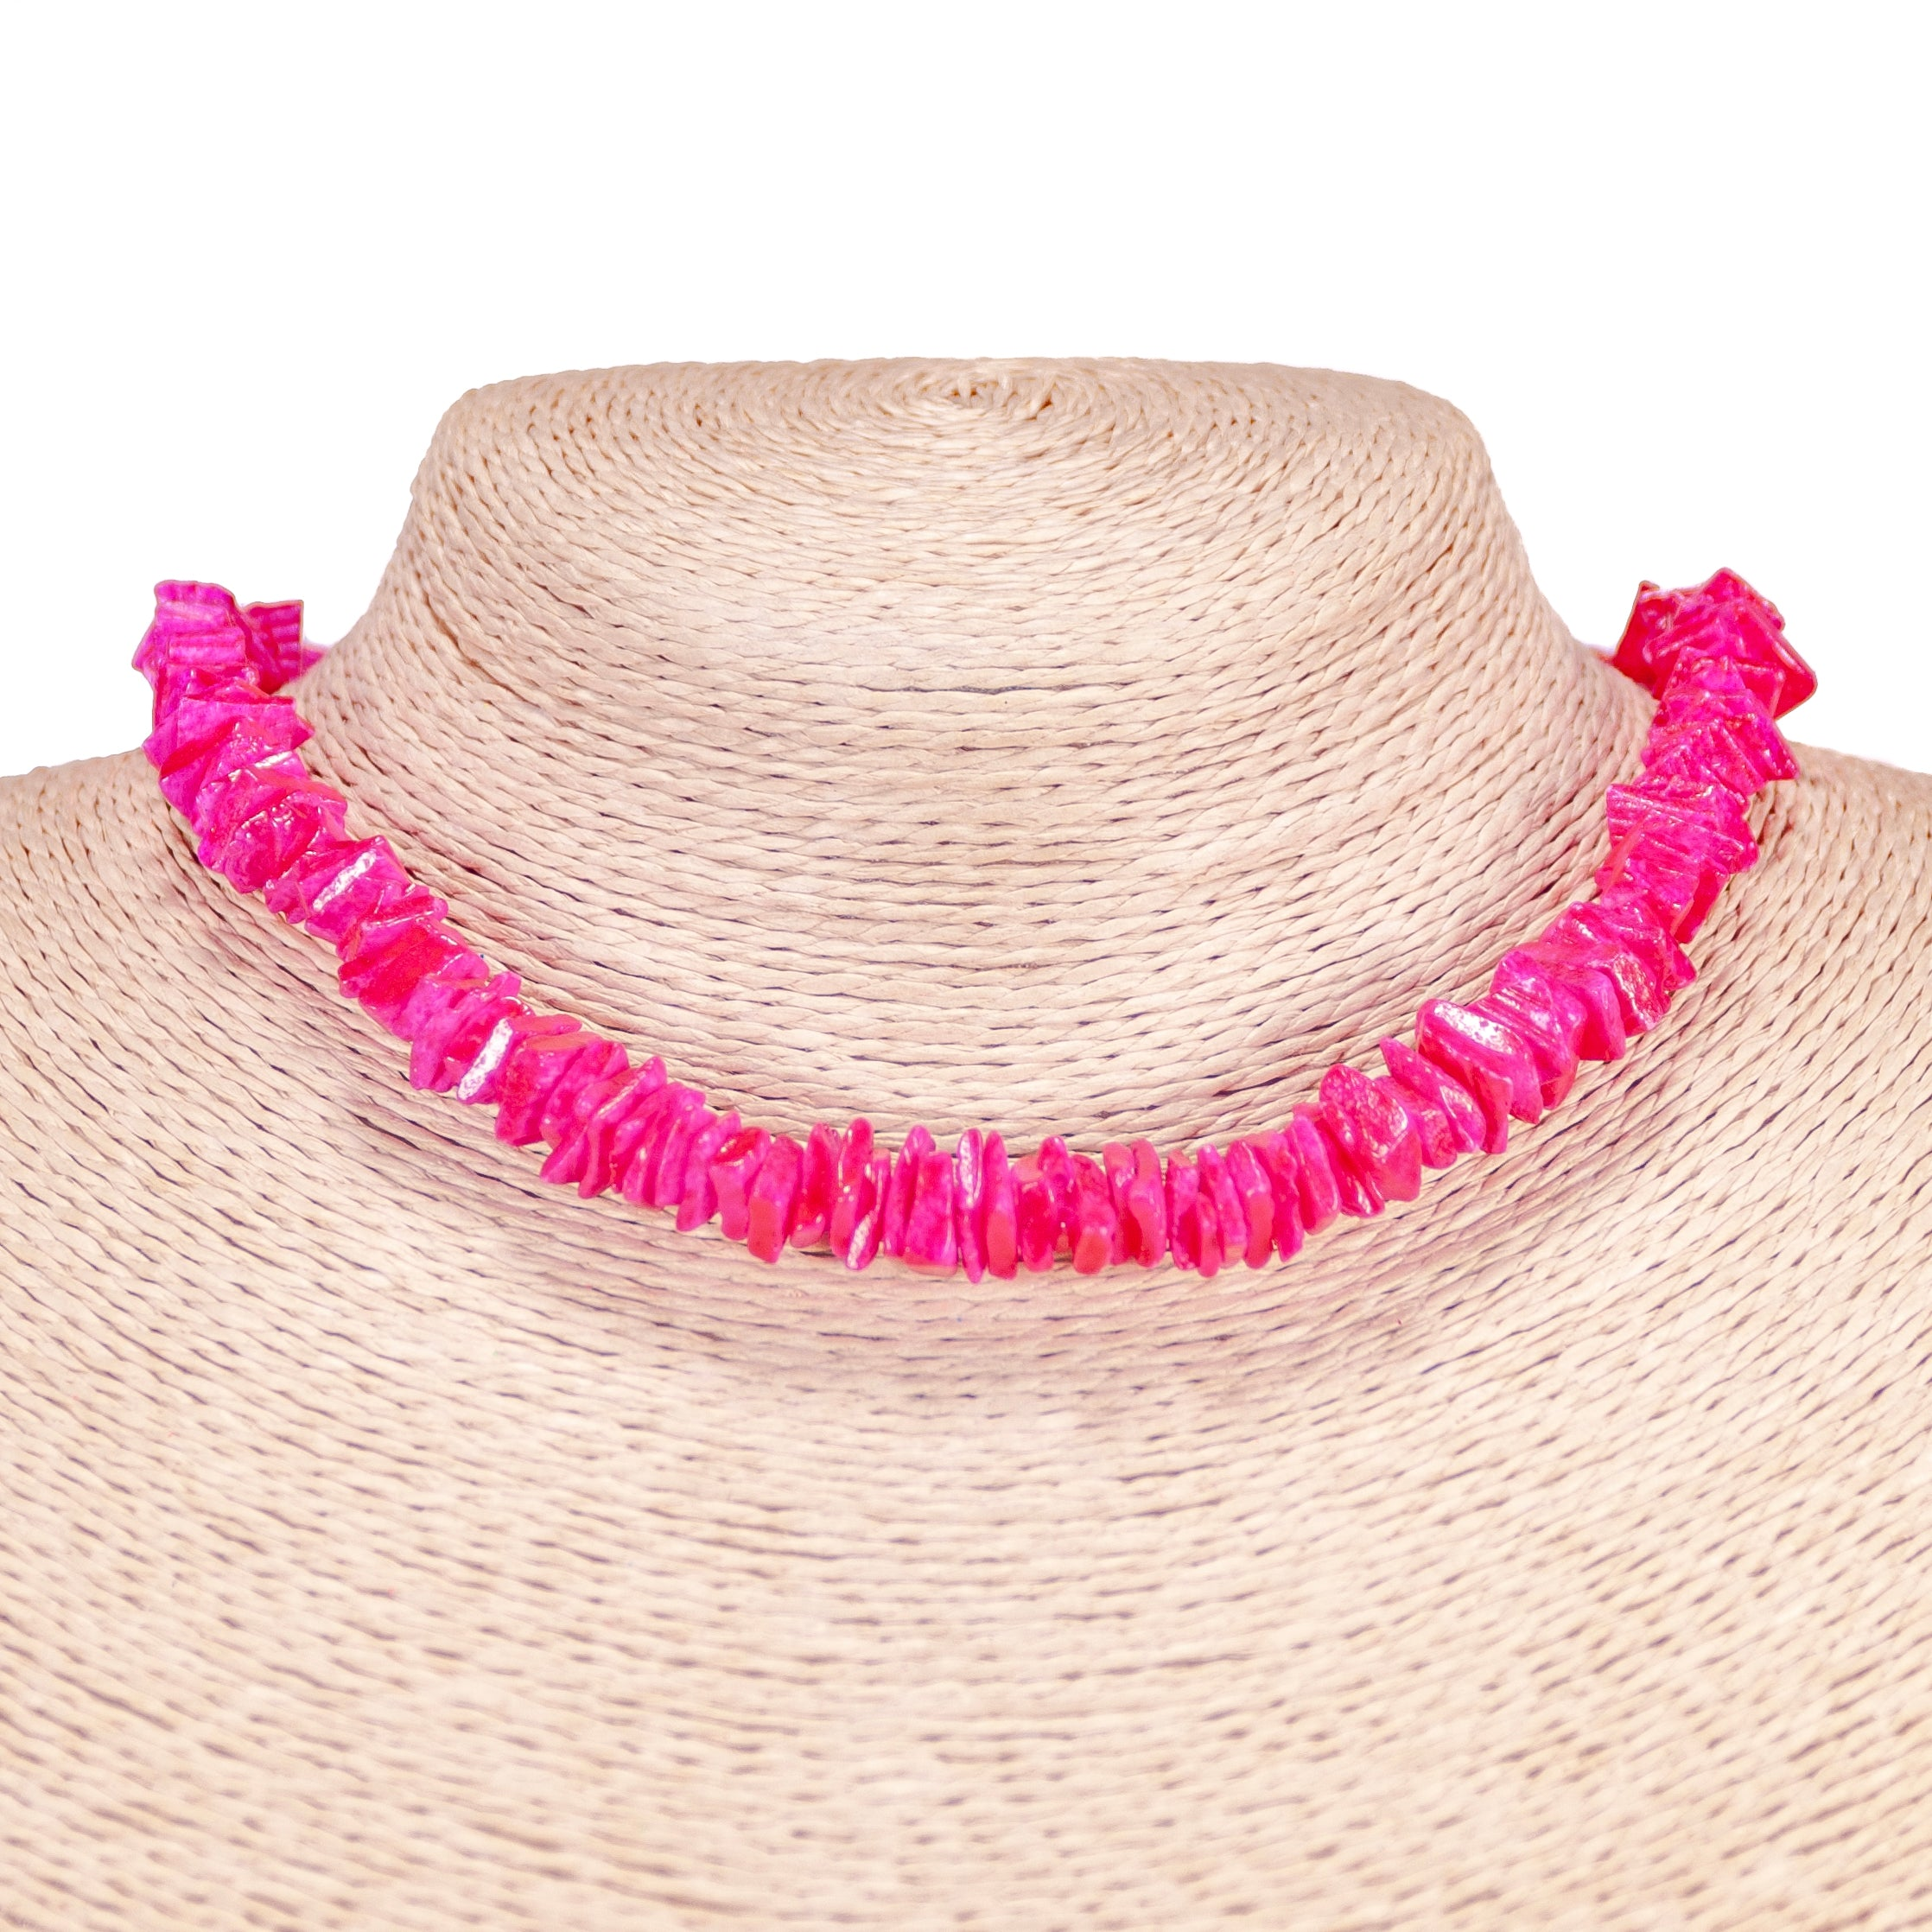 Fuchsia Puka Chip Shell Beads Necklace and Anklet Set